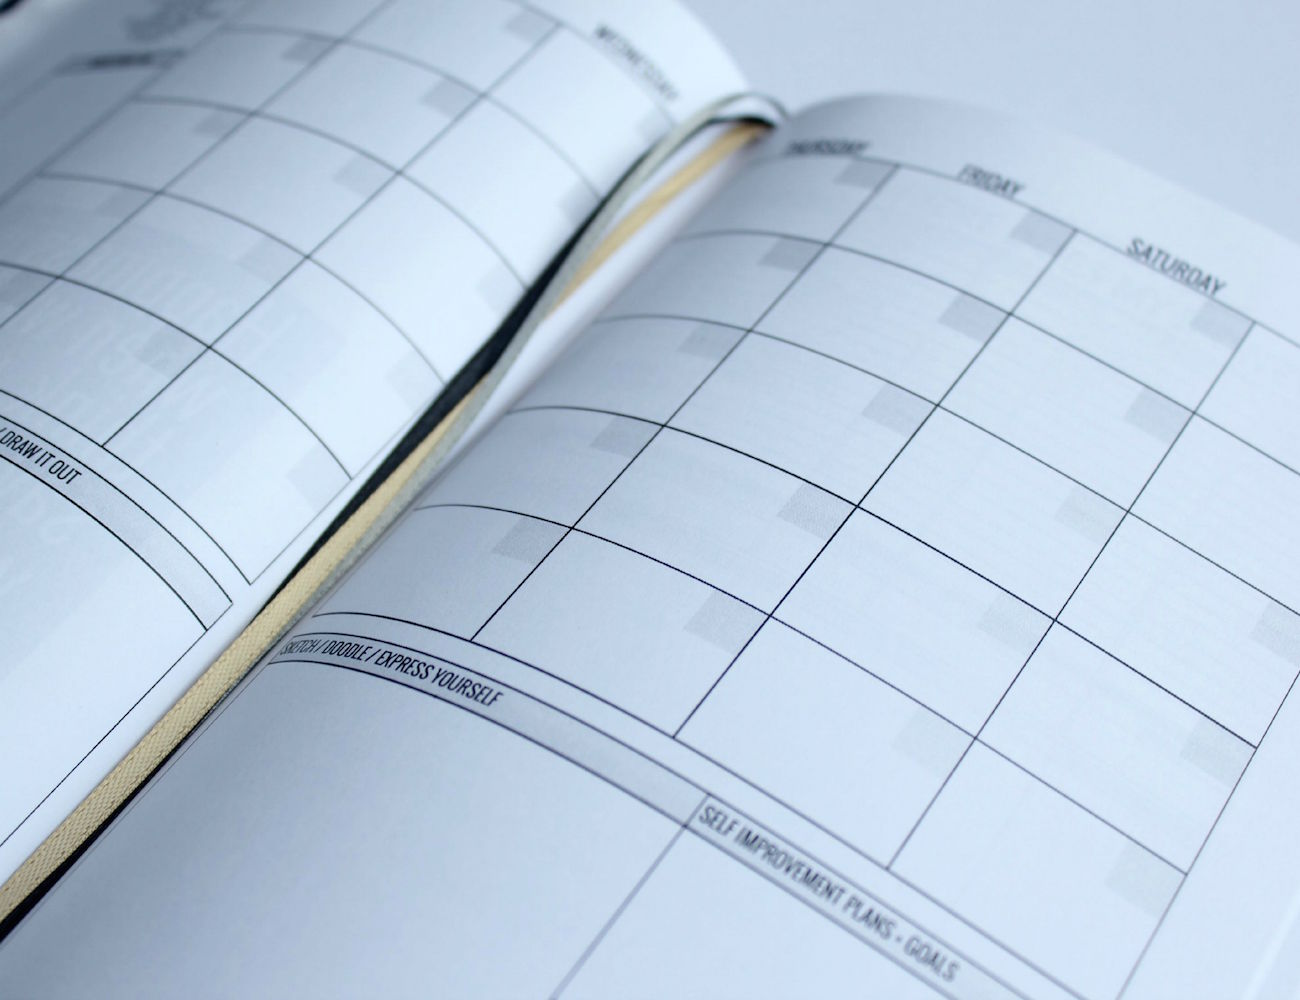 Reminder – The Notebook/Planner for Life